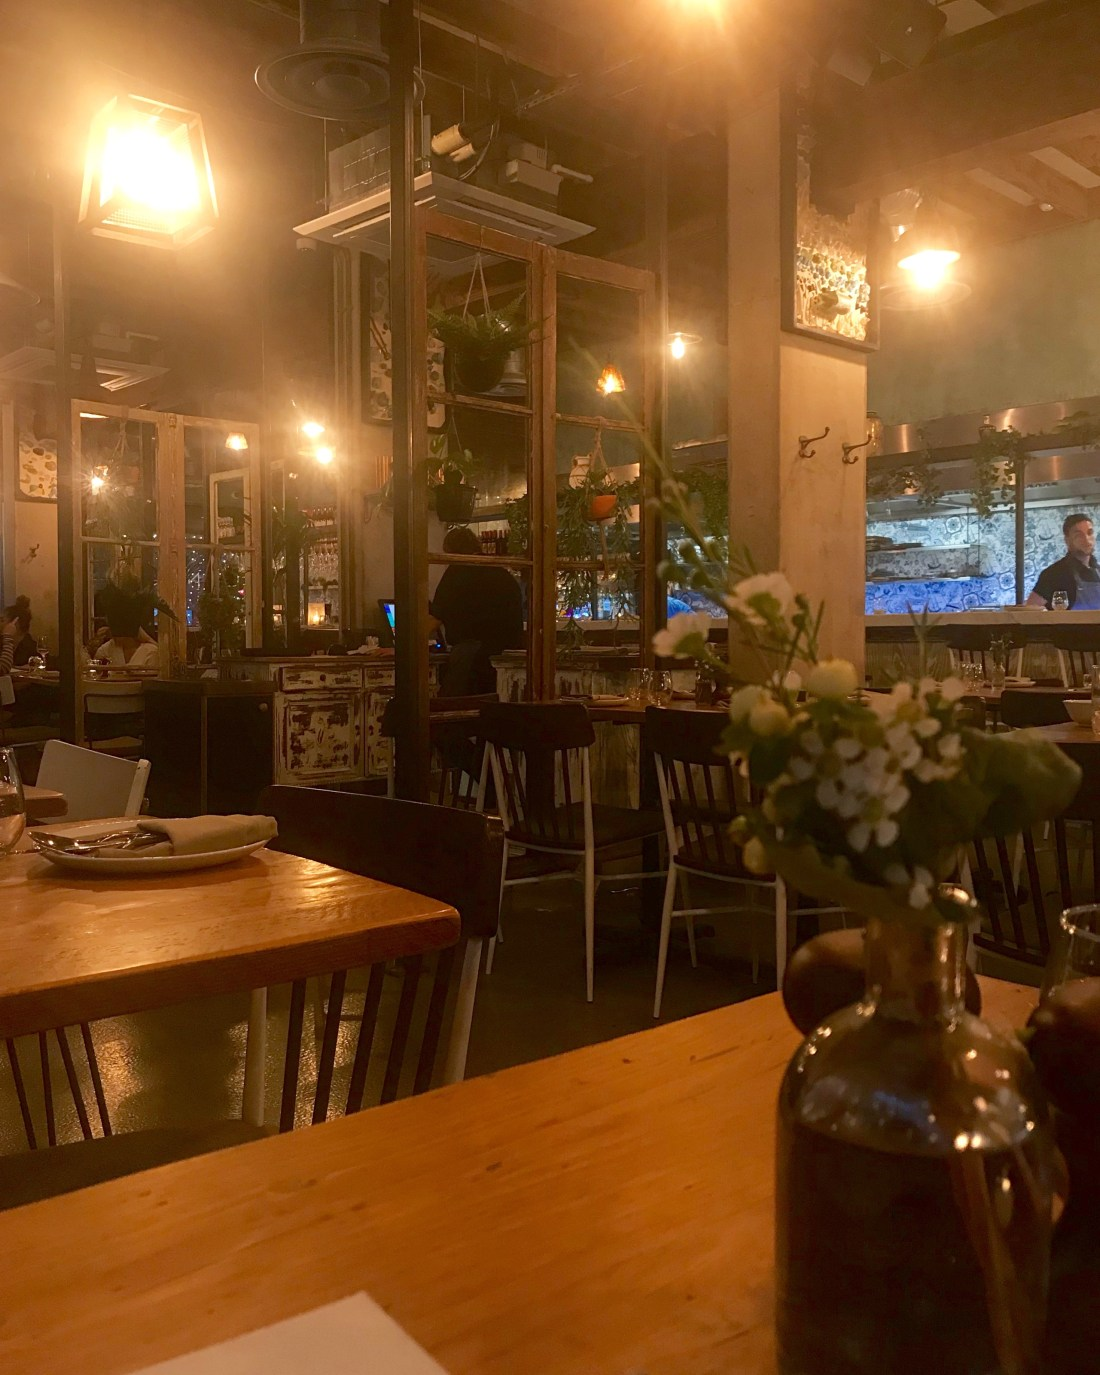 The Best Vegan Friendly Restaurants in Manchester, Canto, Ancoats, Nishi V